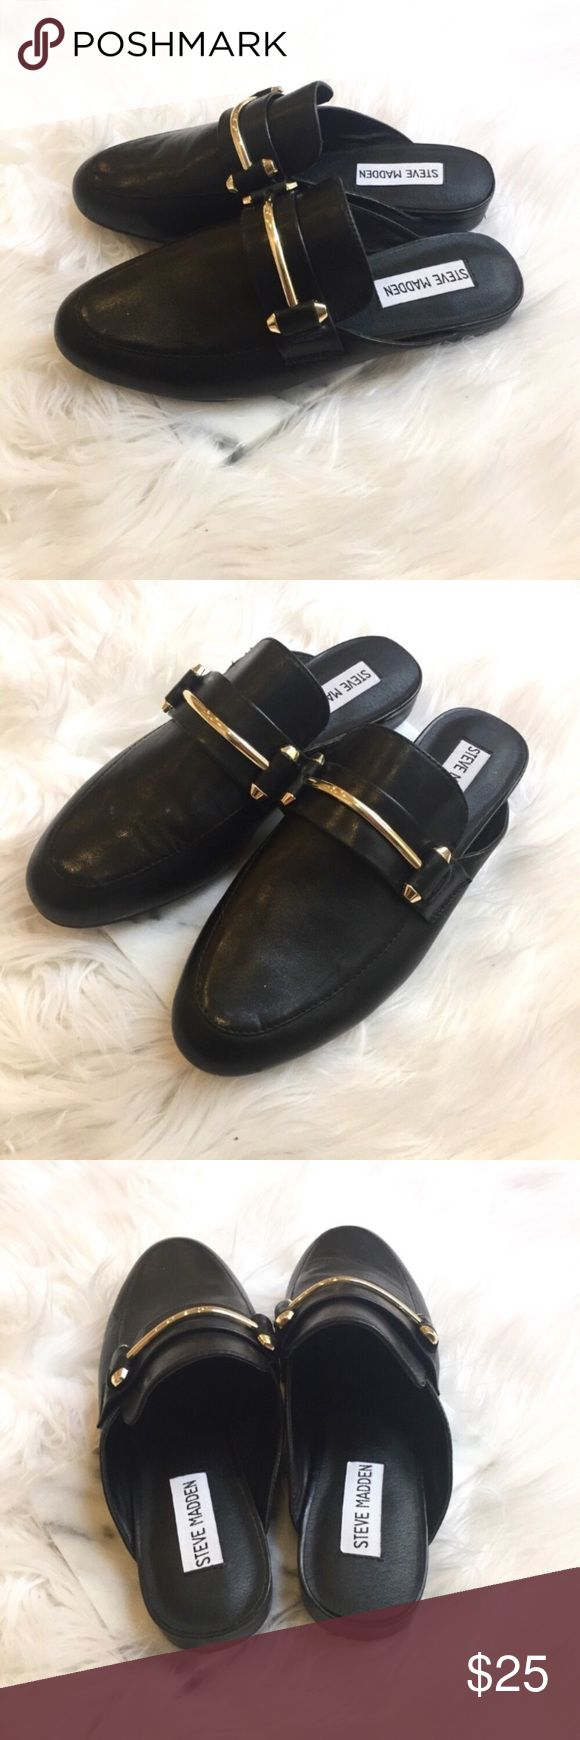 Steve Madden Kandi Mules Classic, slip on style mules by Steve Madden!  Feminine, chic, and great for any occasion. Unfortunately these are a bit too small on me. They are a size 6.5, but definitely fit more like a 6. Steve Madden Shoes